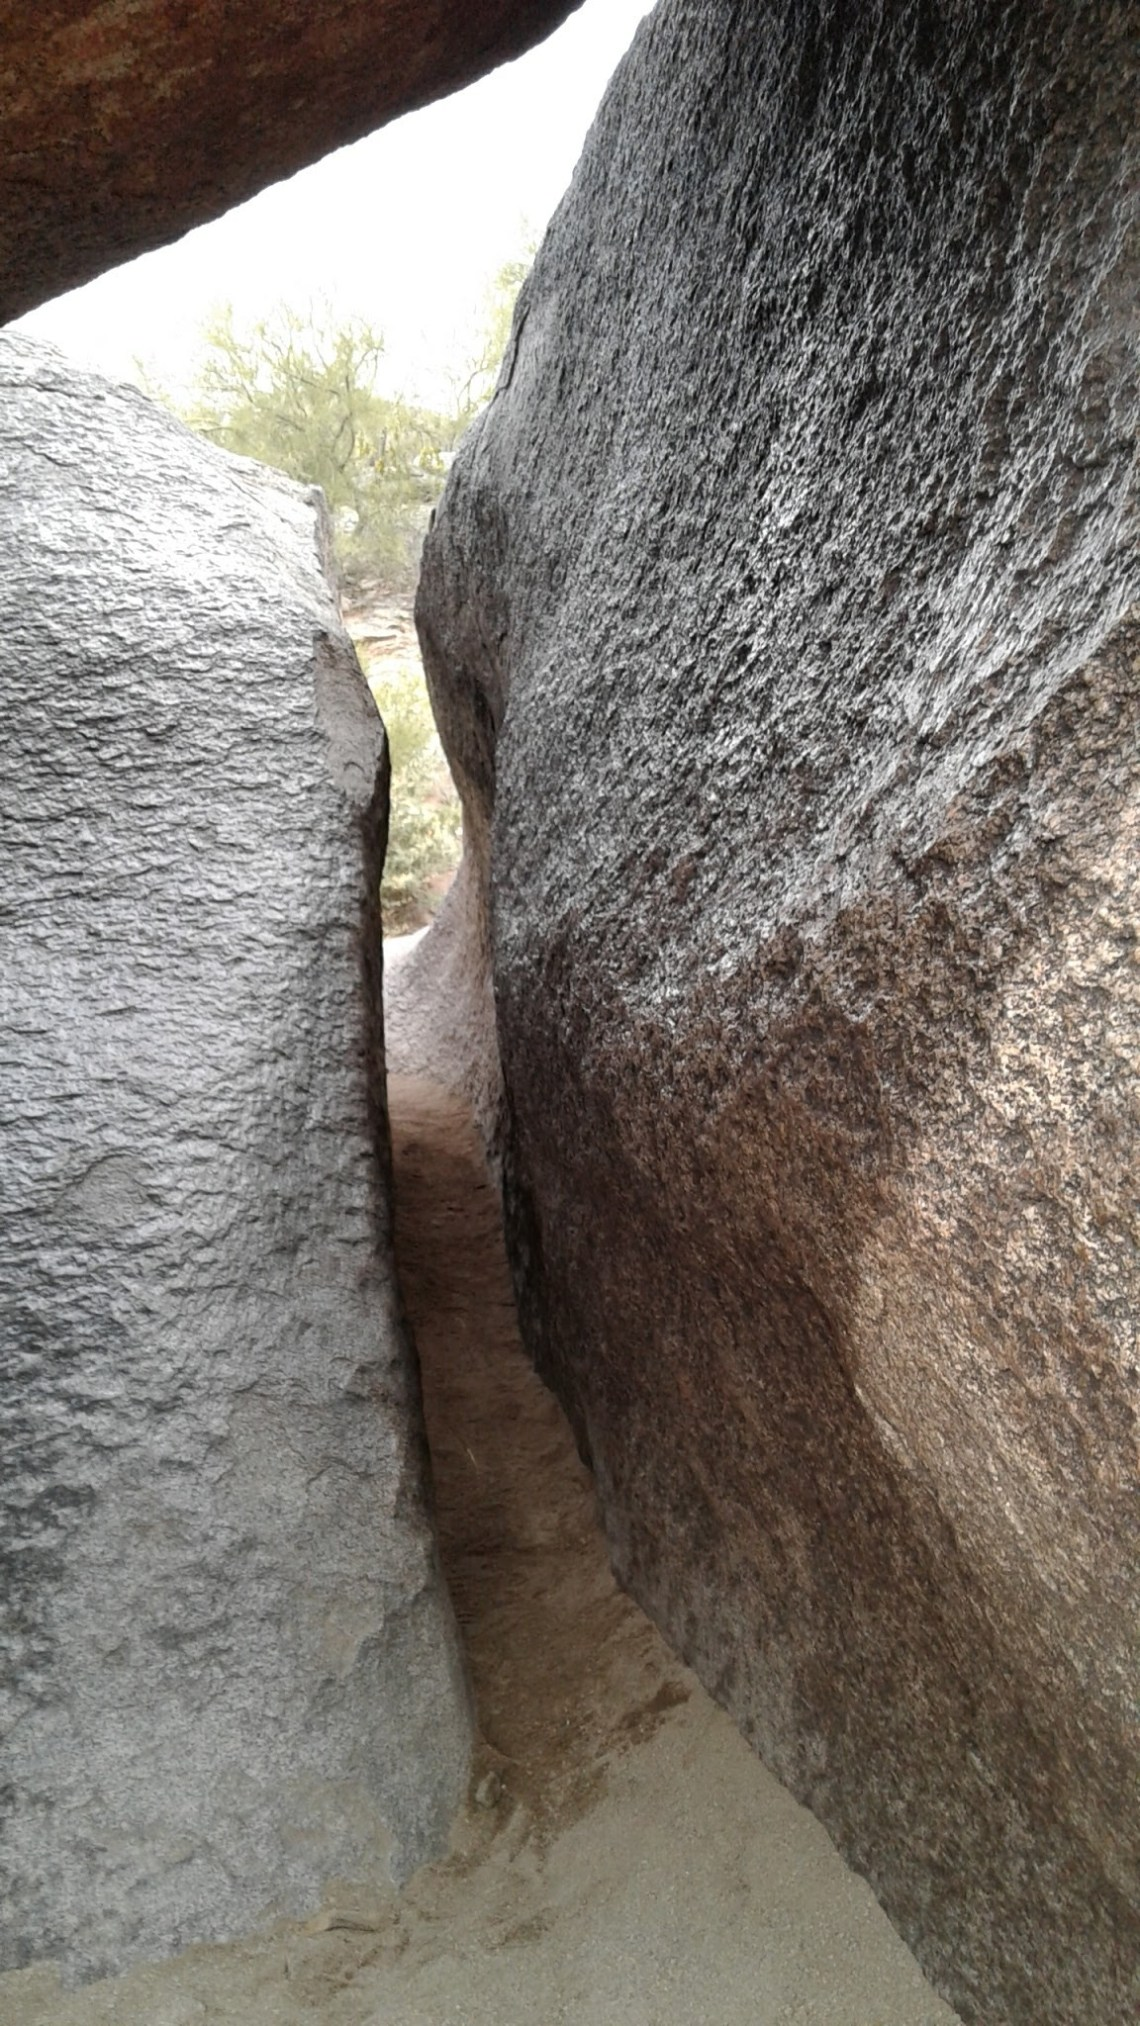 tight space between two boulders